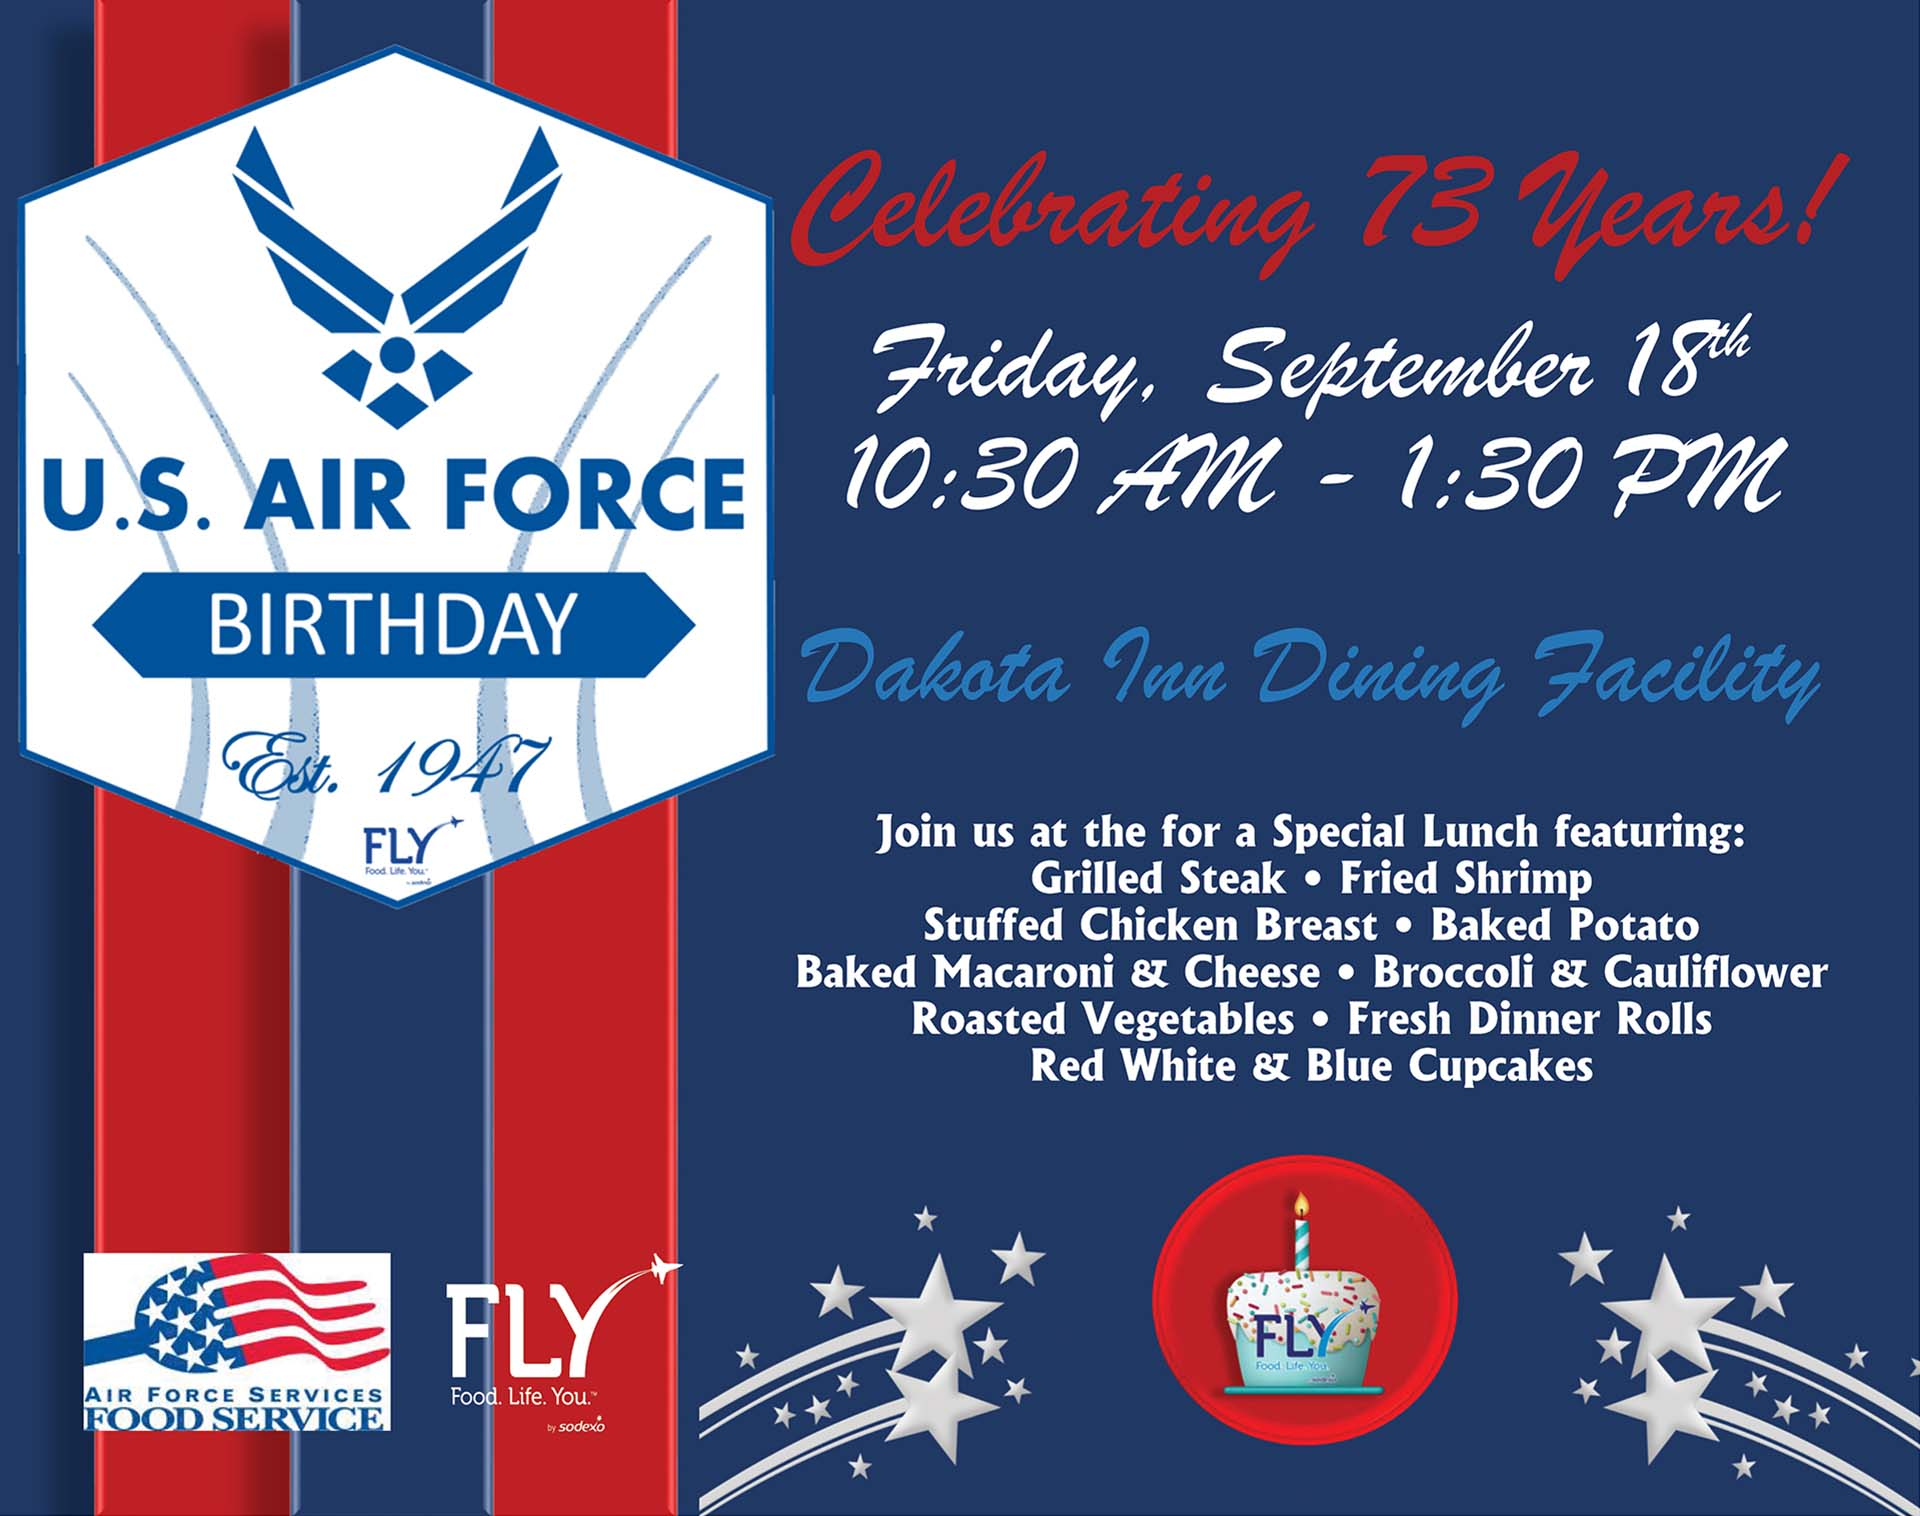 U.S. Air Force Birthday – Special Lunch